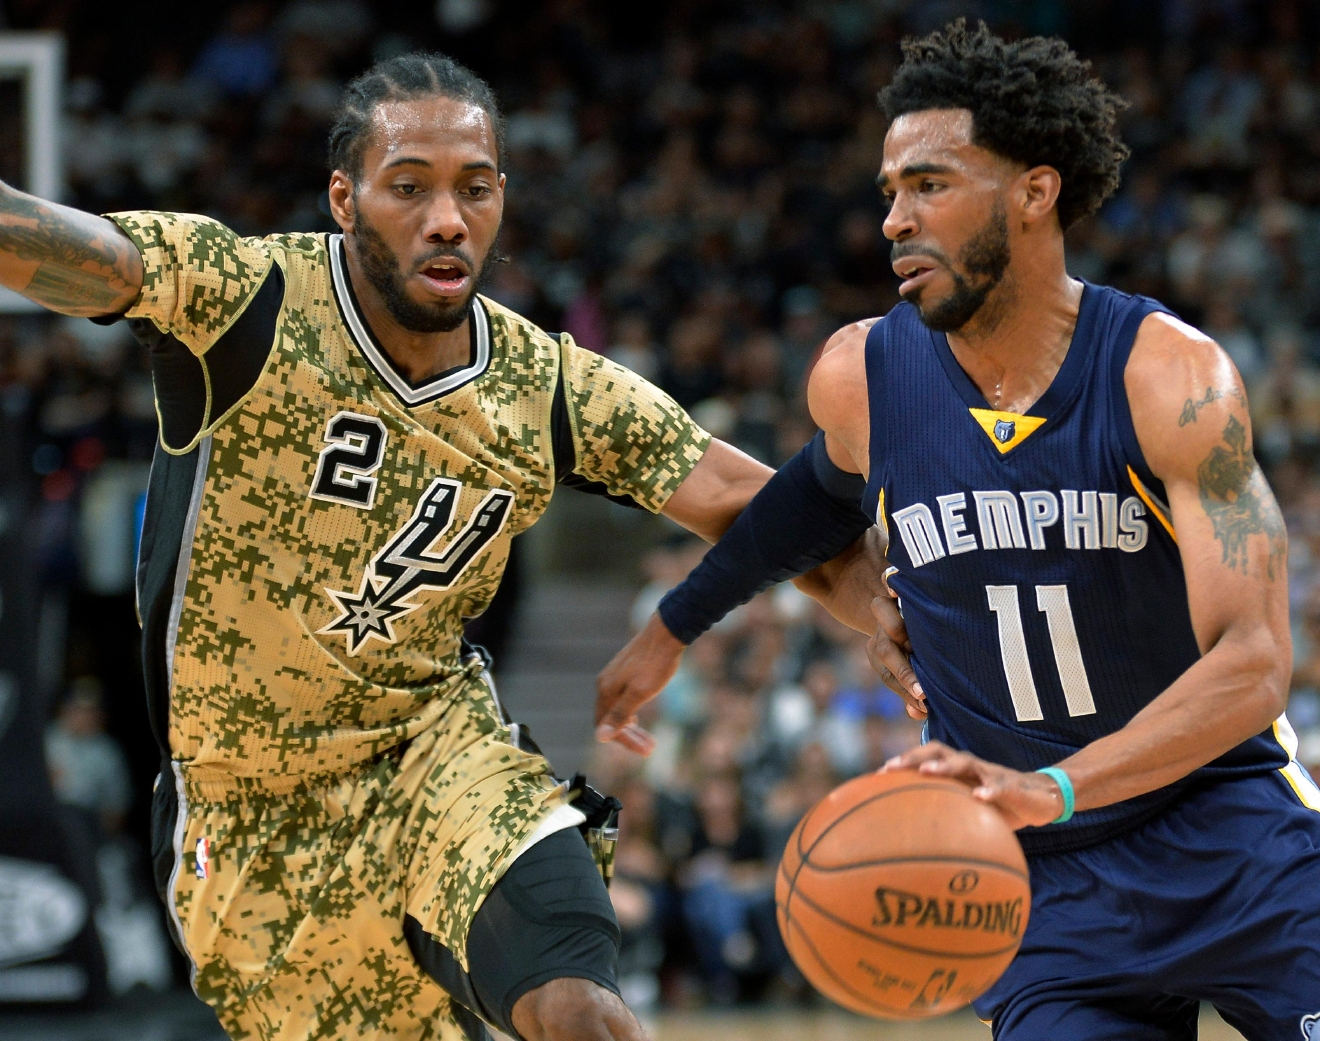 Memphis Grizzlies guard Mike Conley (11) drives around San Antonio Spurs forward Kawhi Leonard during the first half of an NBA basketball game, Thursday, March 23, 2017, in San Antonio. (AP Photo/Darren Abate)p